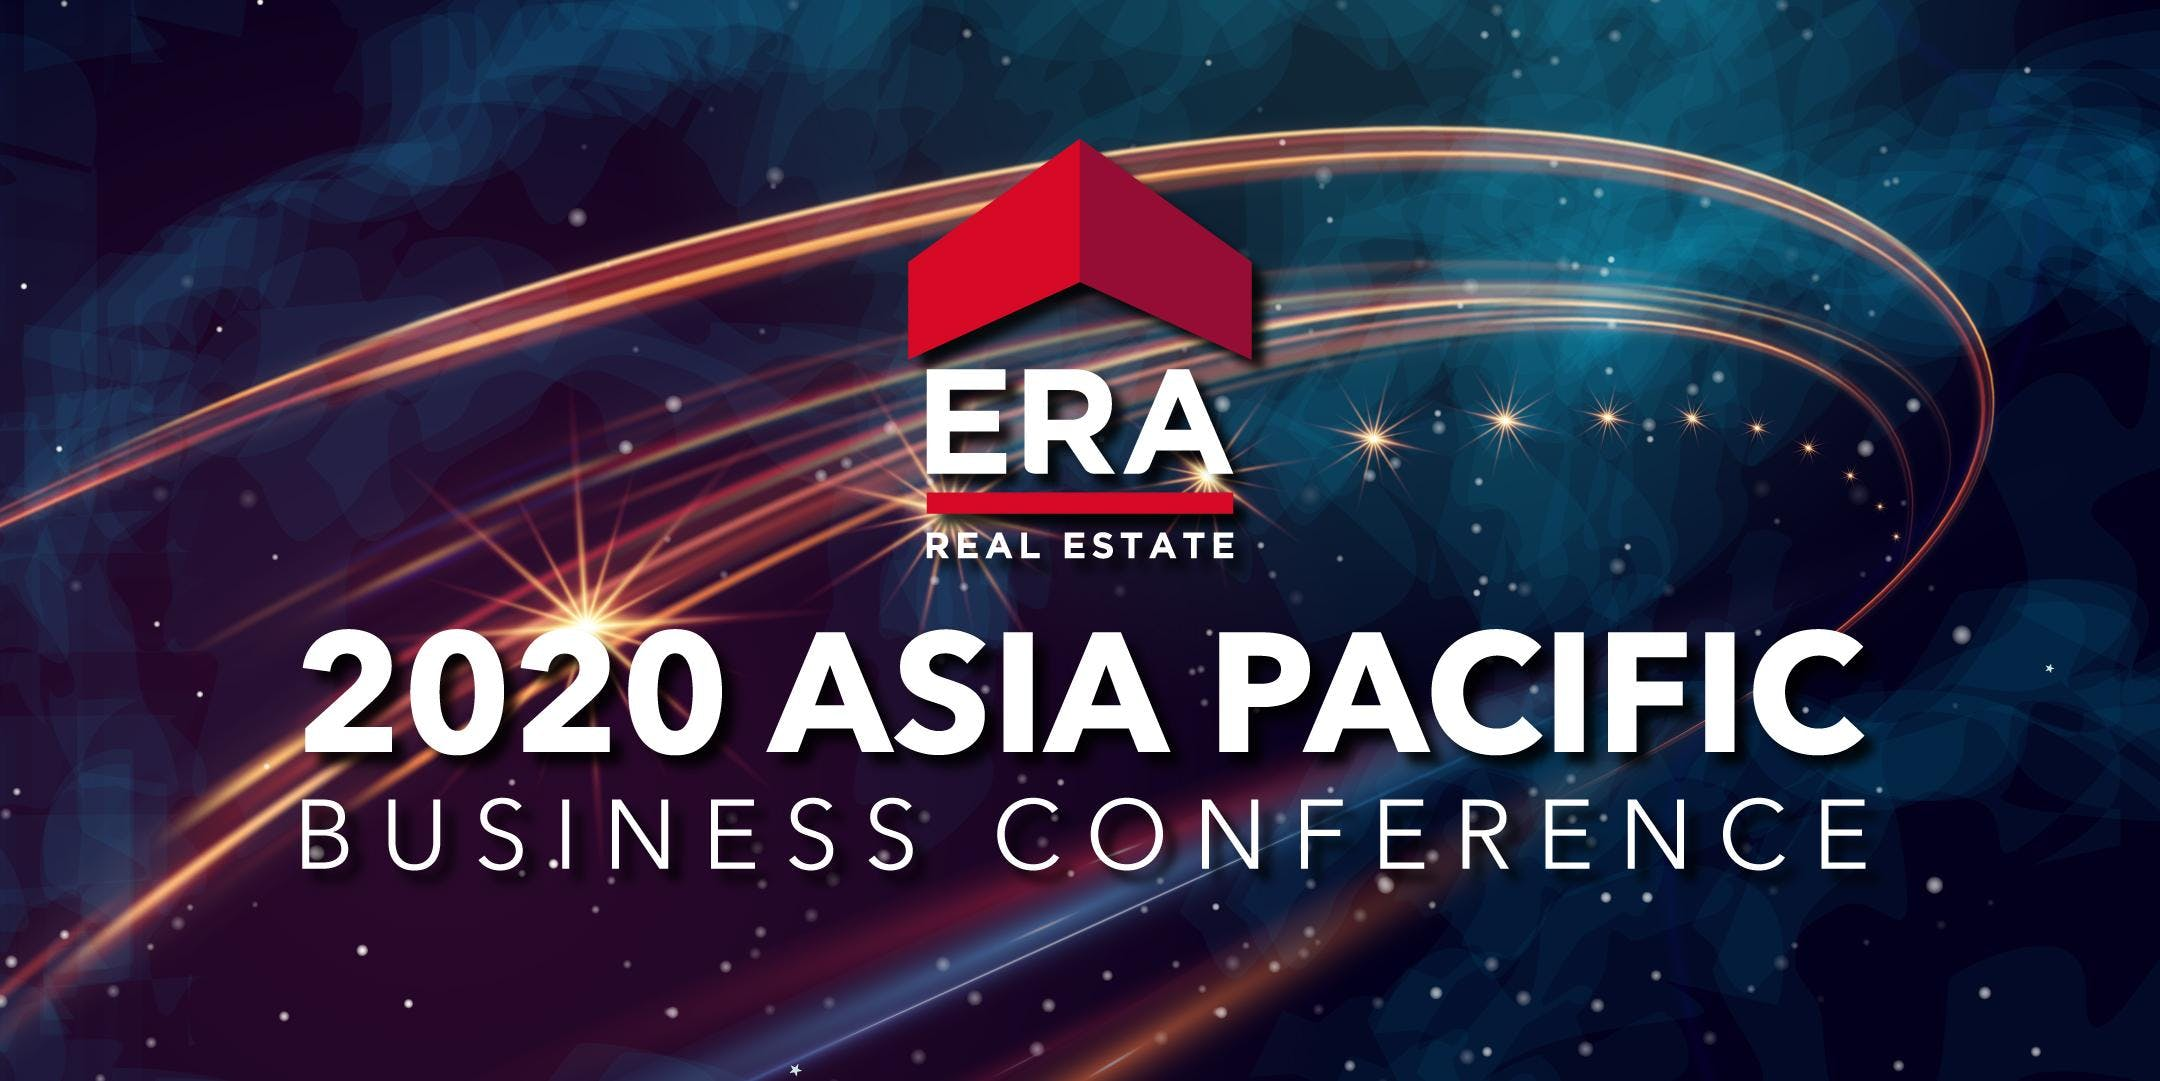 Asia Pacific Business Conference 2020